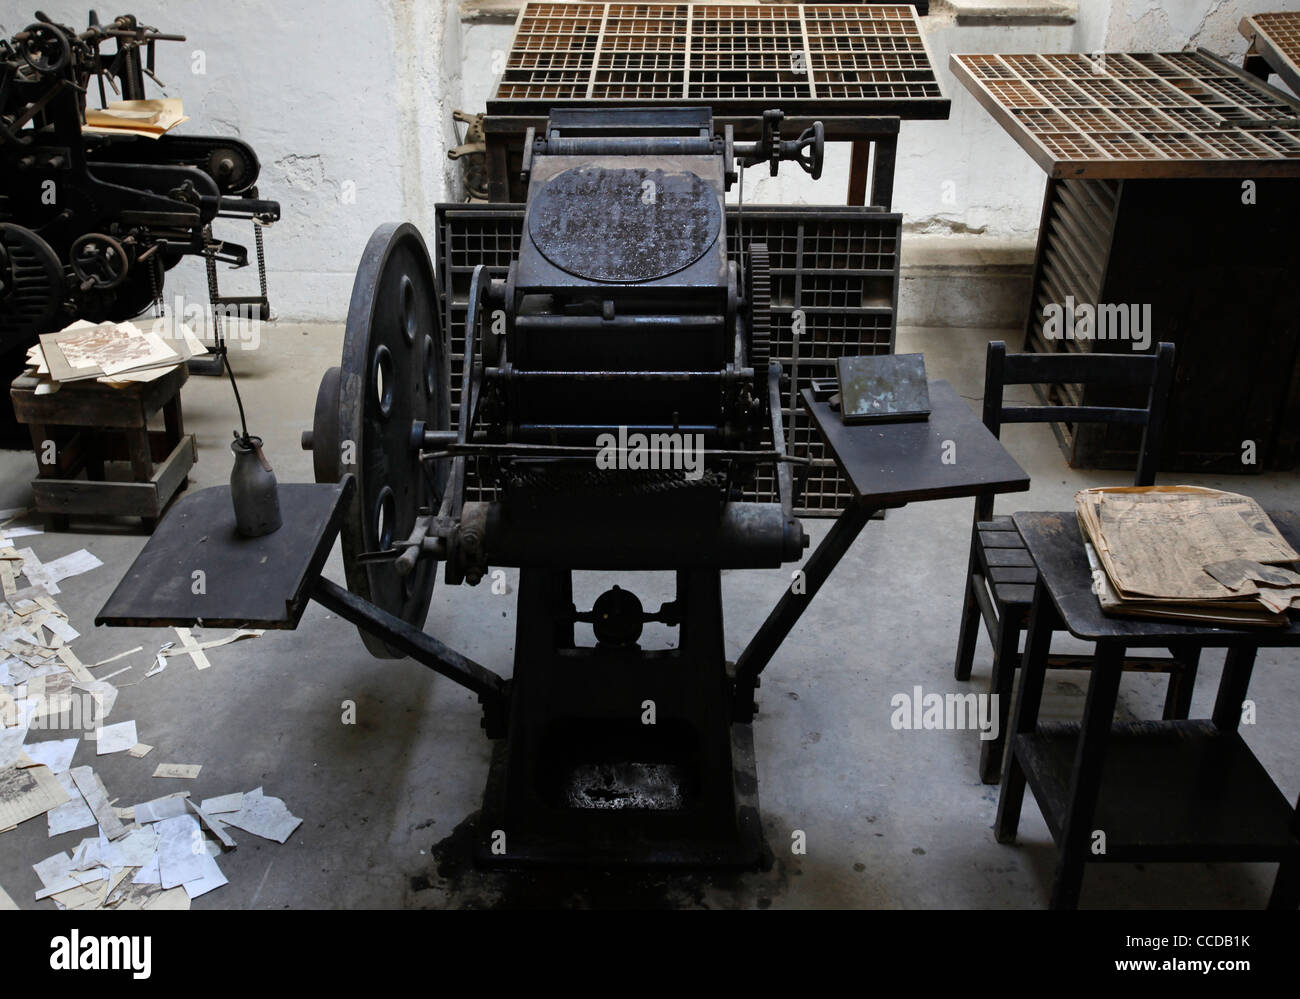 Old print machines at the prisoner's workshop room in the Museum Of Underground Prisoners commemorating the - Stock Image